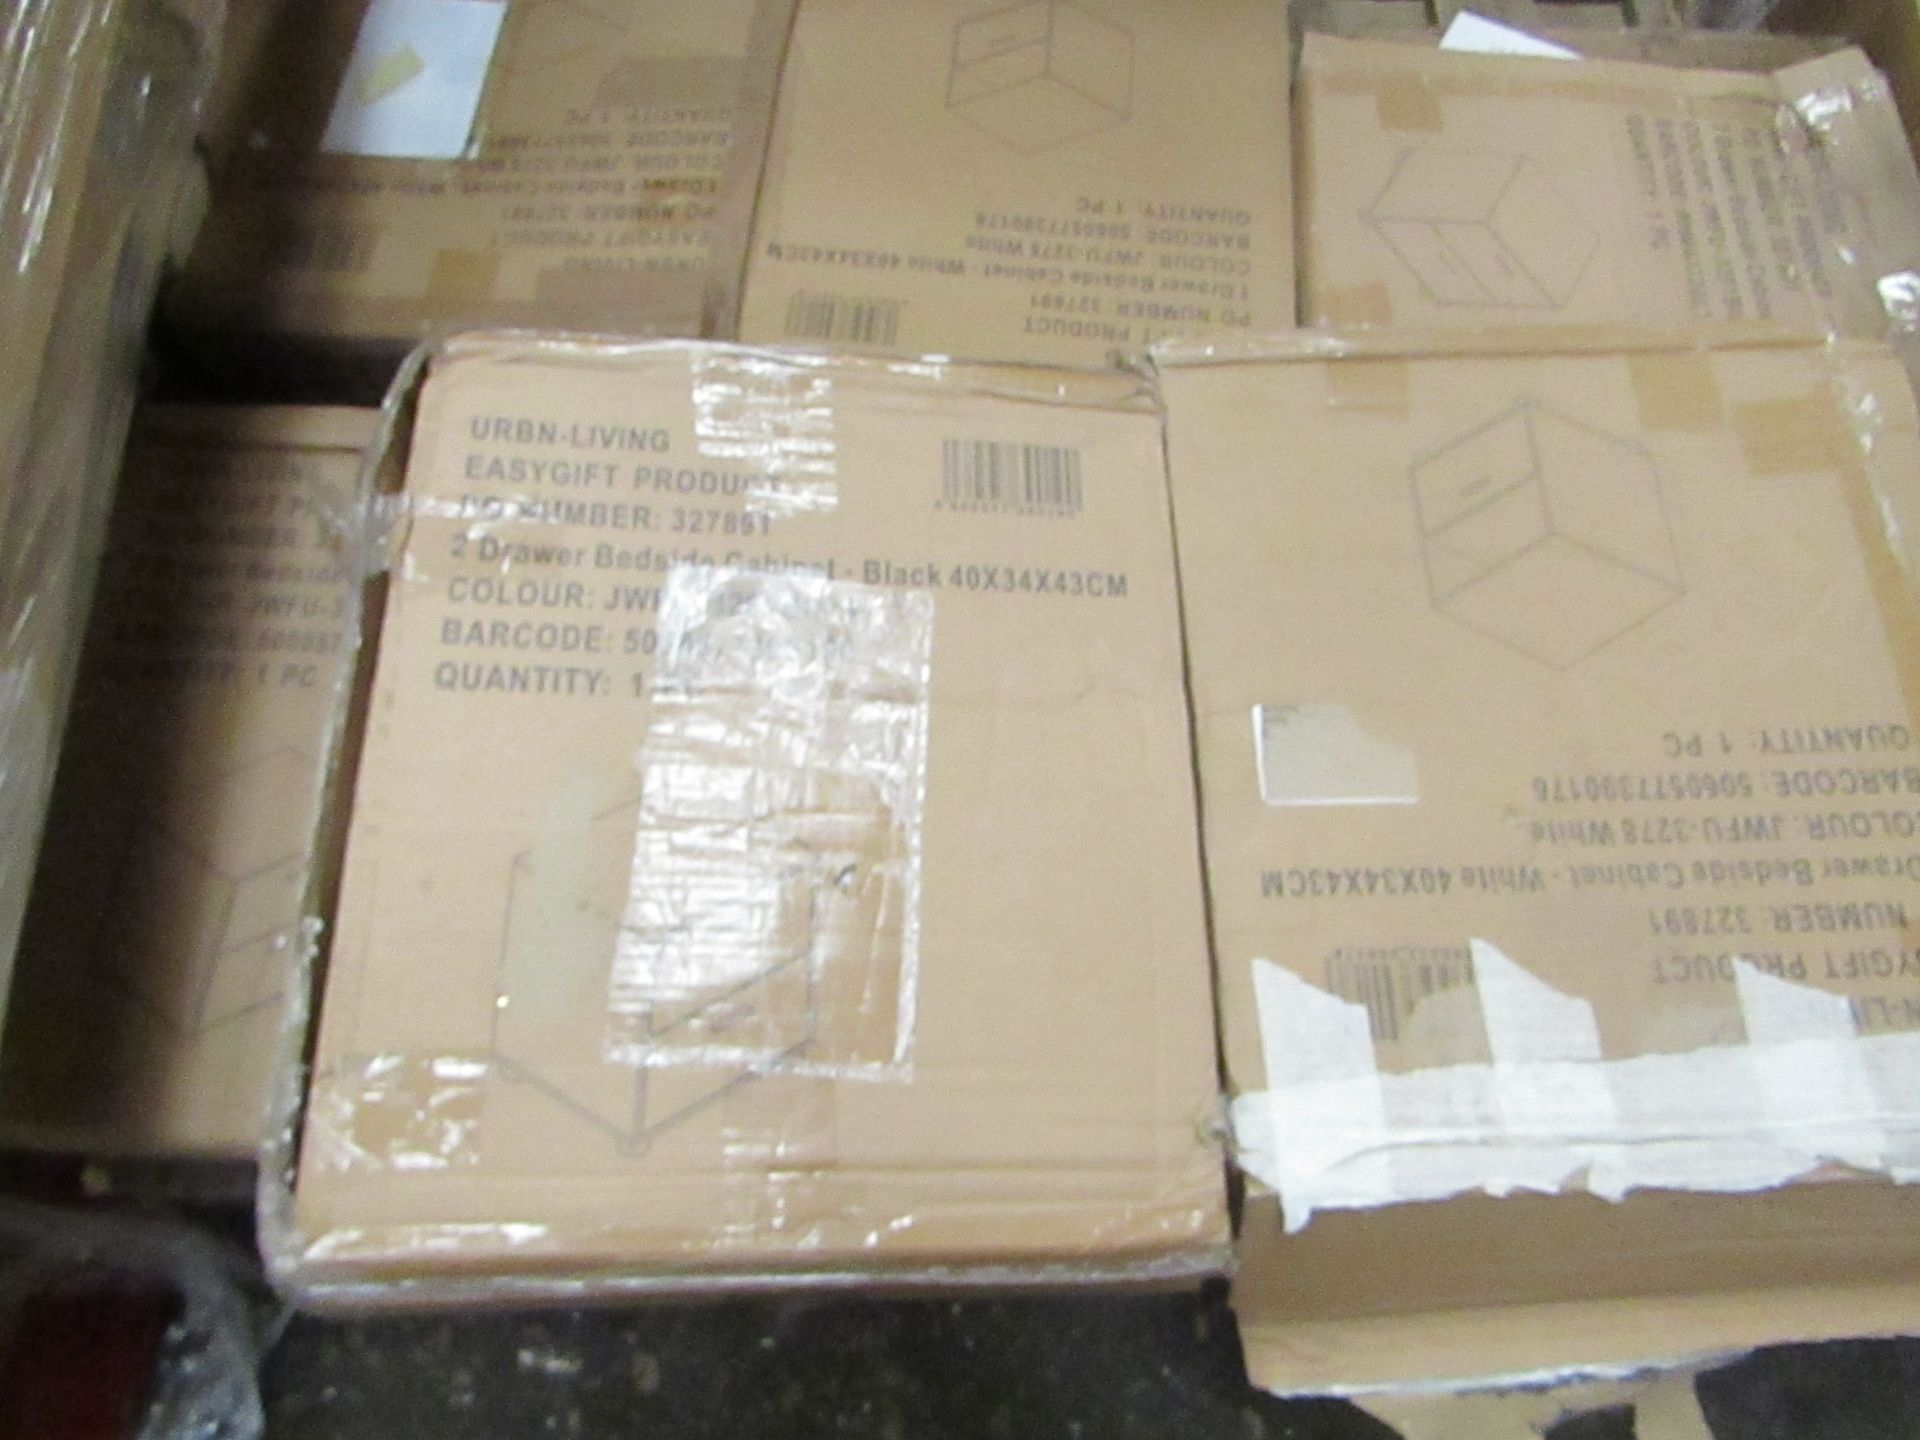 Lot 11 - 3x Pallets of Flat pack Furniture, some loose and some still boxed, most looks to be shelving units